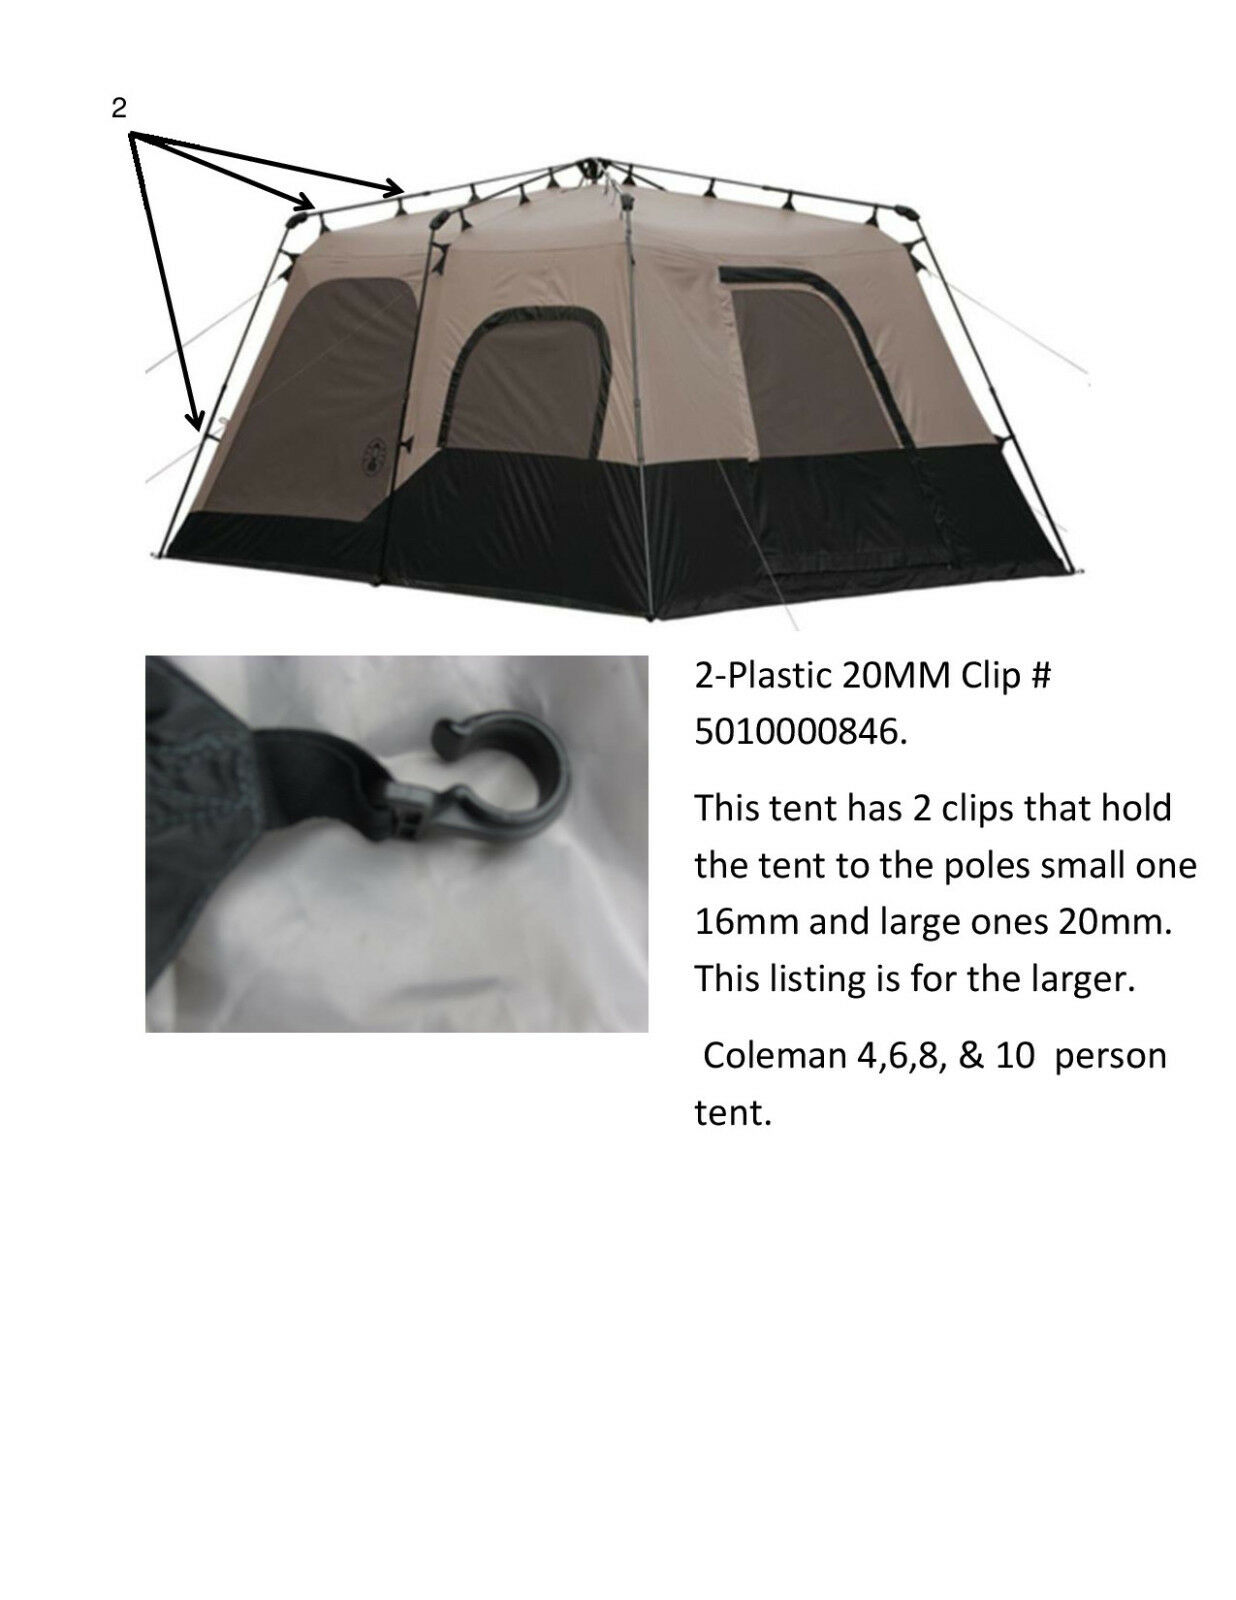 Picture 1 of 1  sc 1 st  eBay & Coleman Instant Tent 8 Person Tent Parts 20mm Clip # 5010000846 | eBay